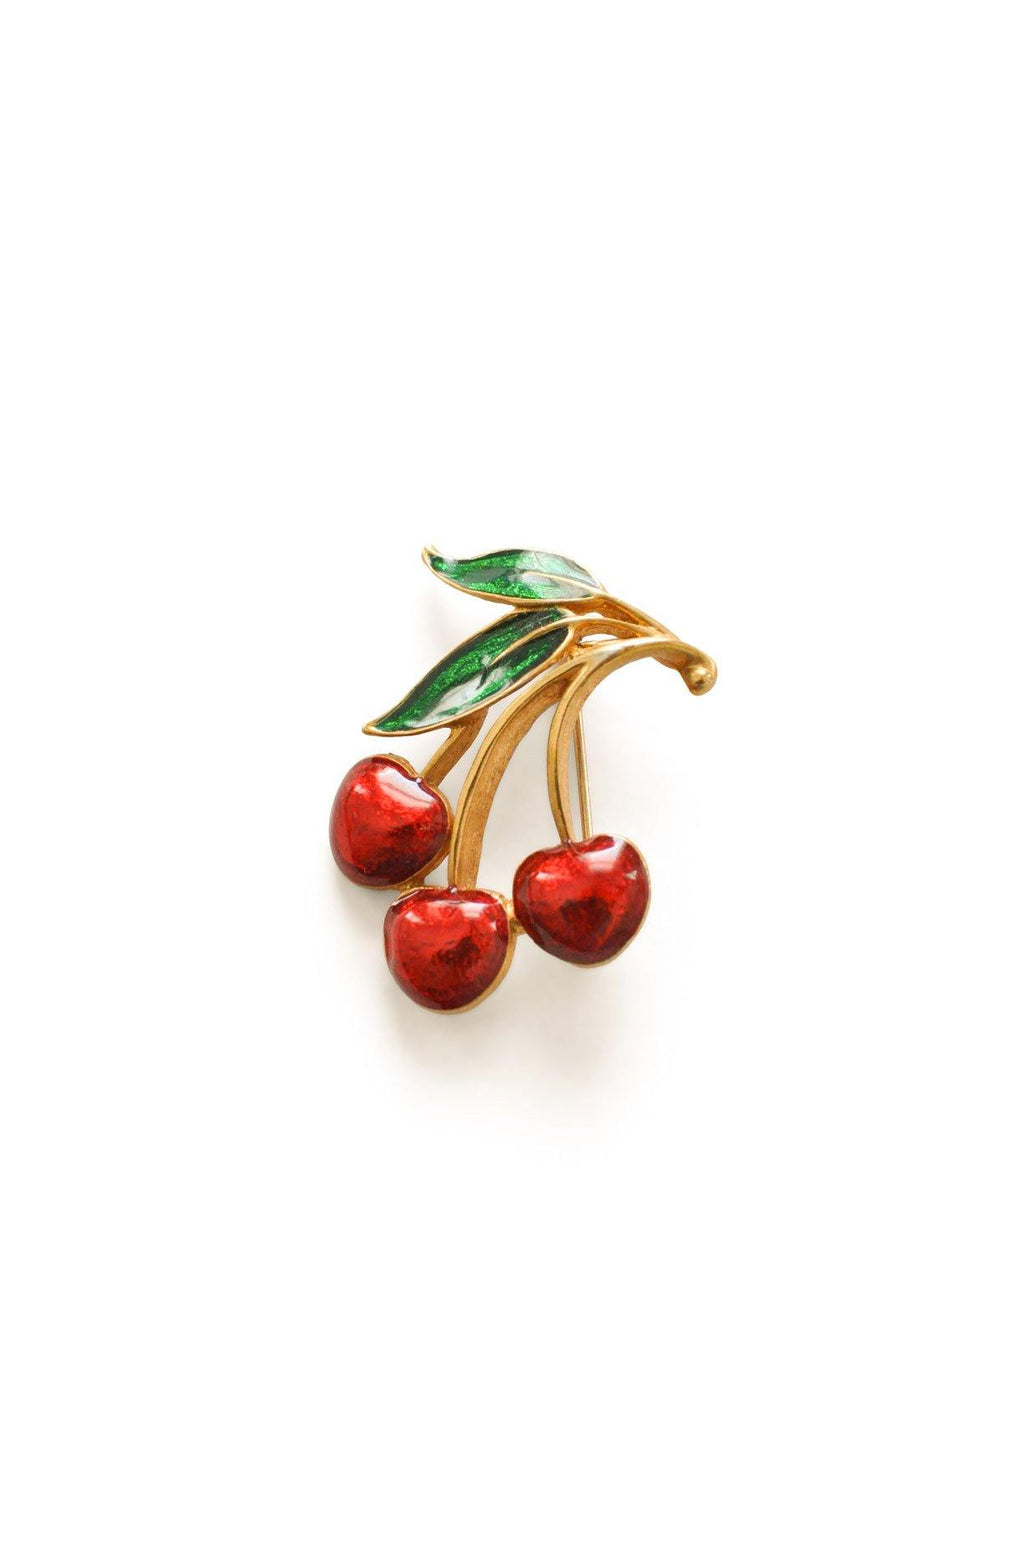 Cherry Rhinestone Brooch